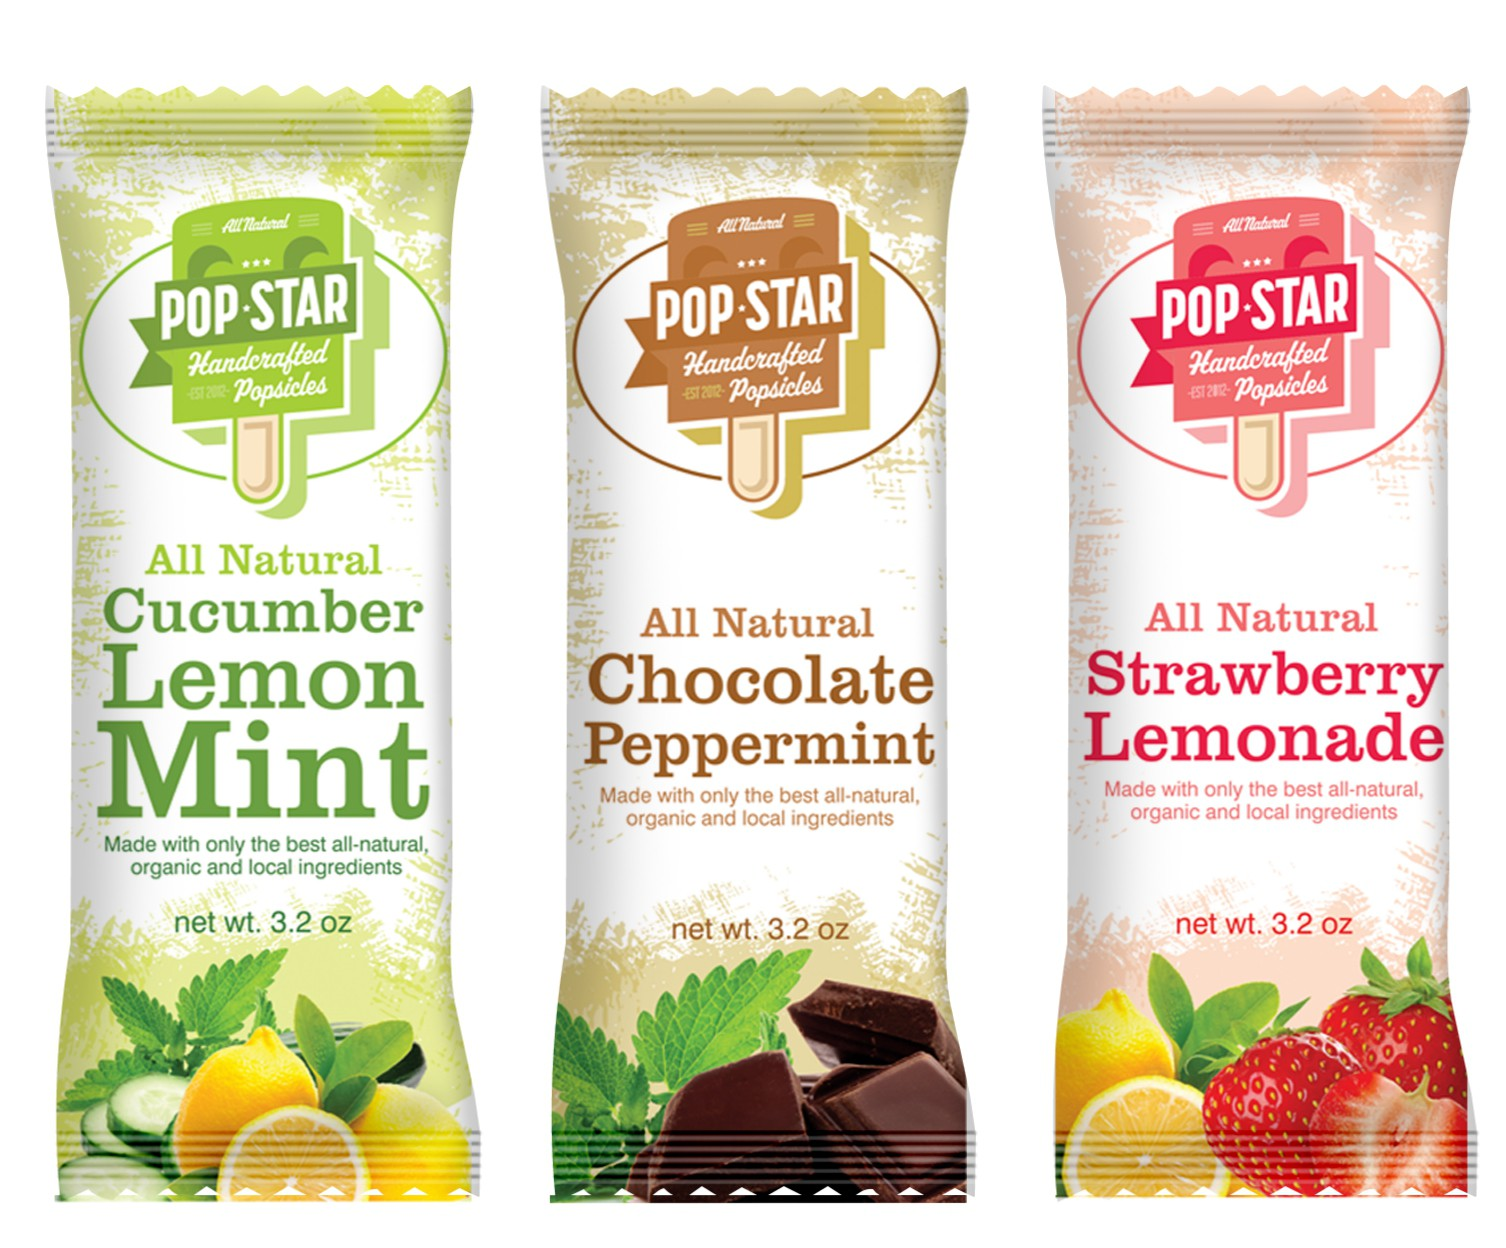 Create the next product packaging for Pop Star Handcrafted Popsicles